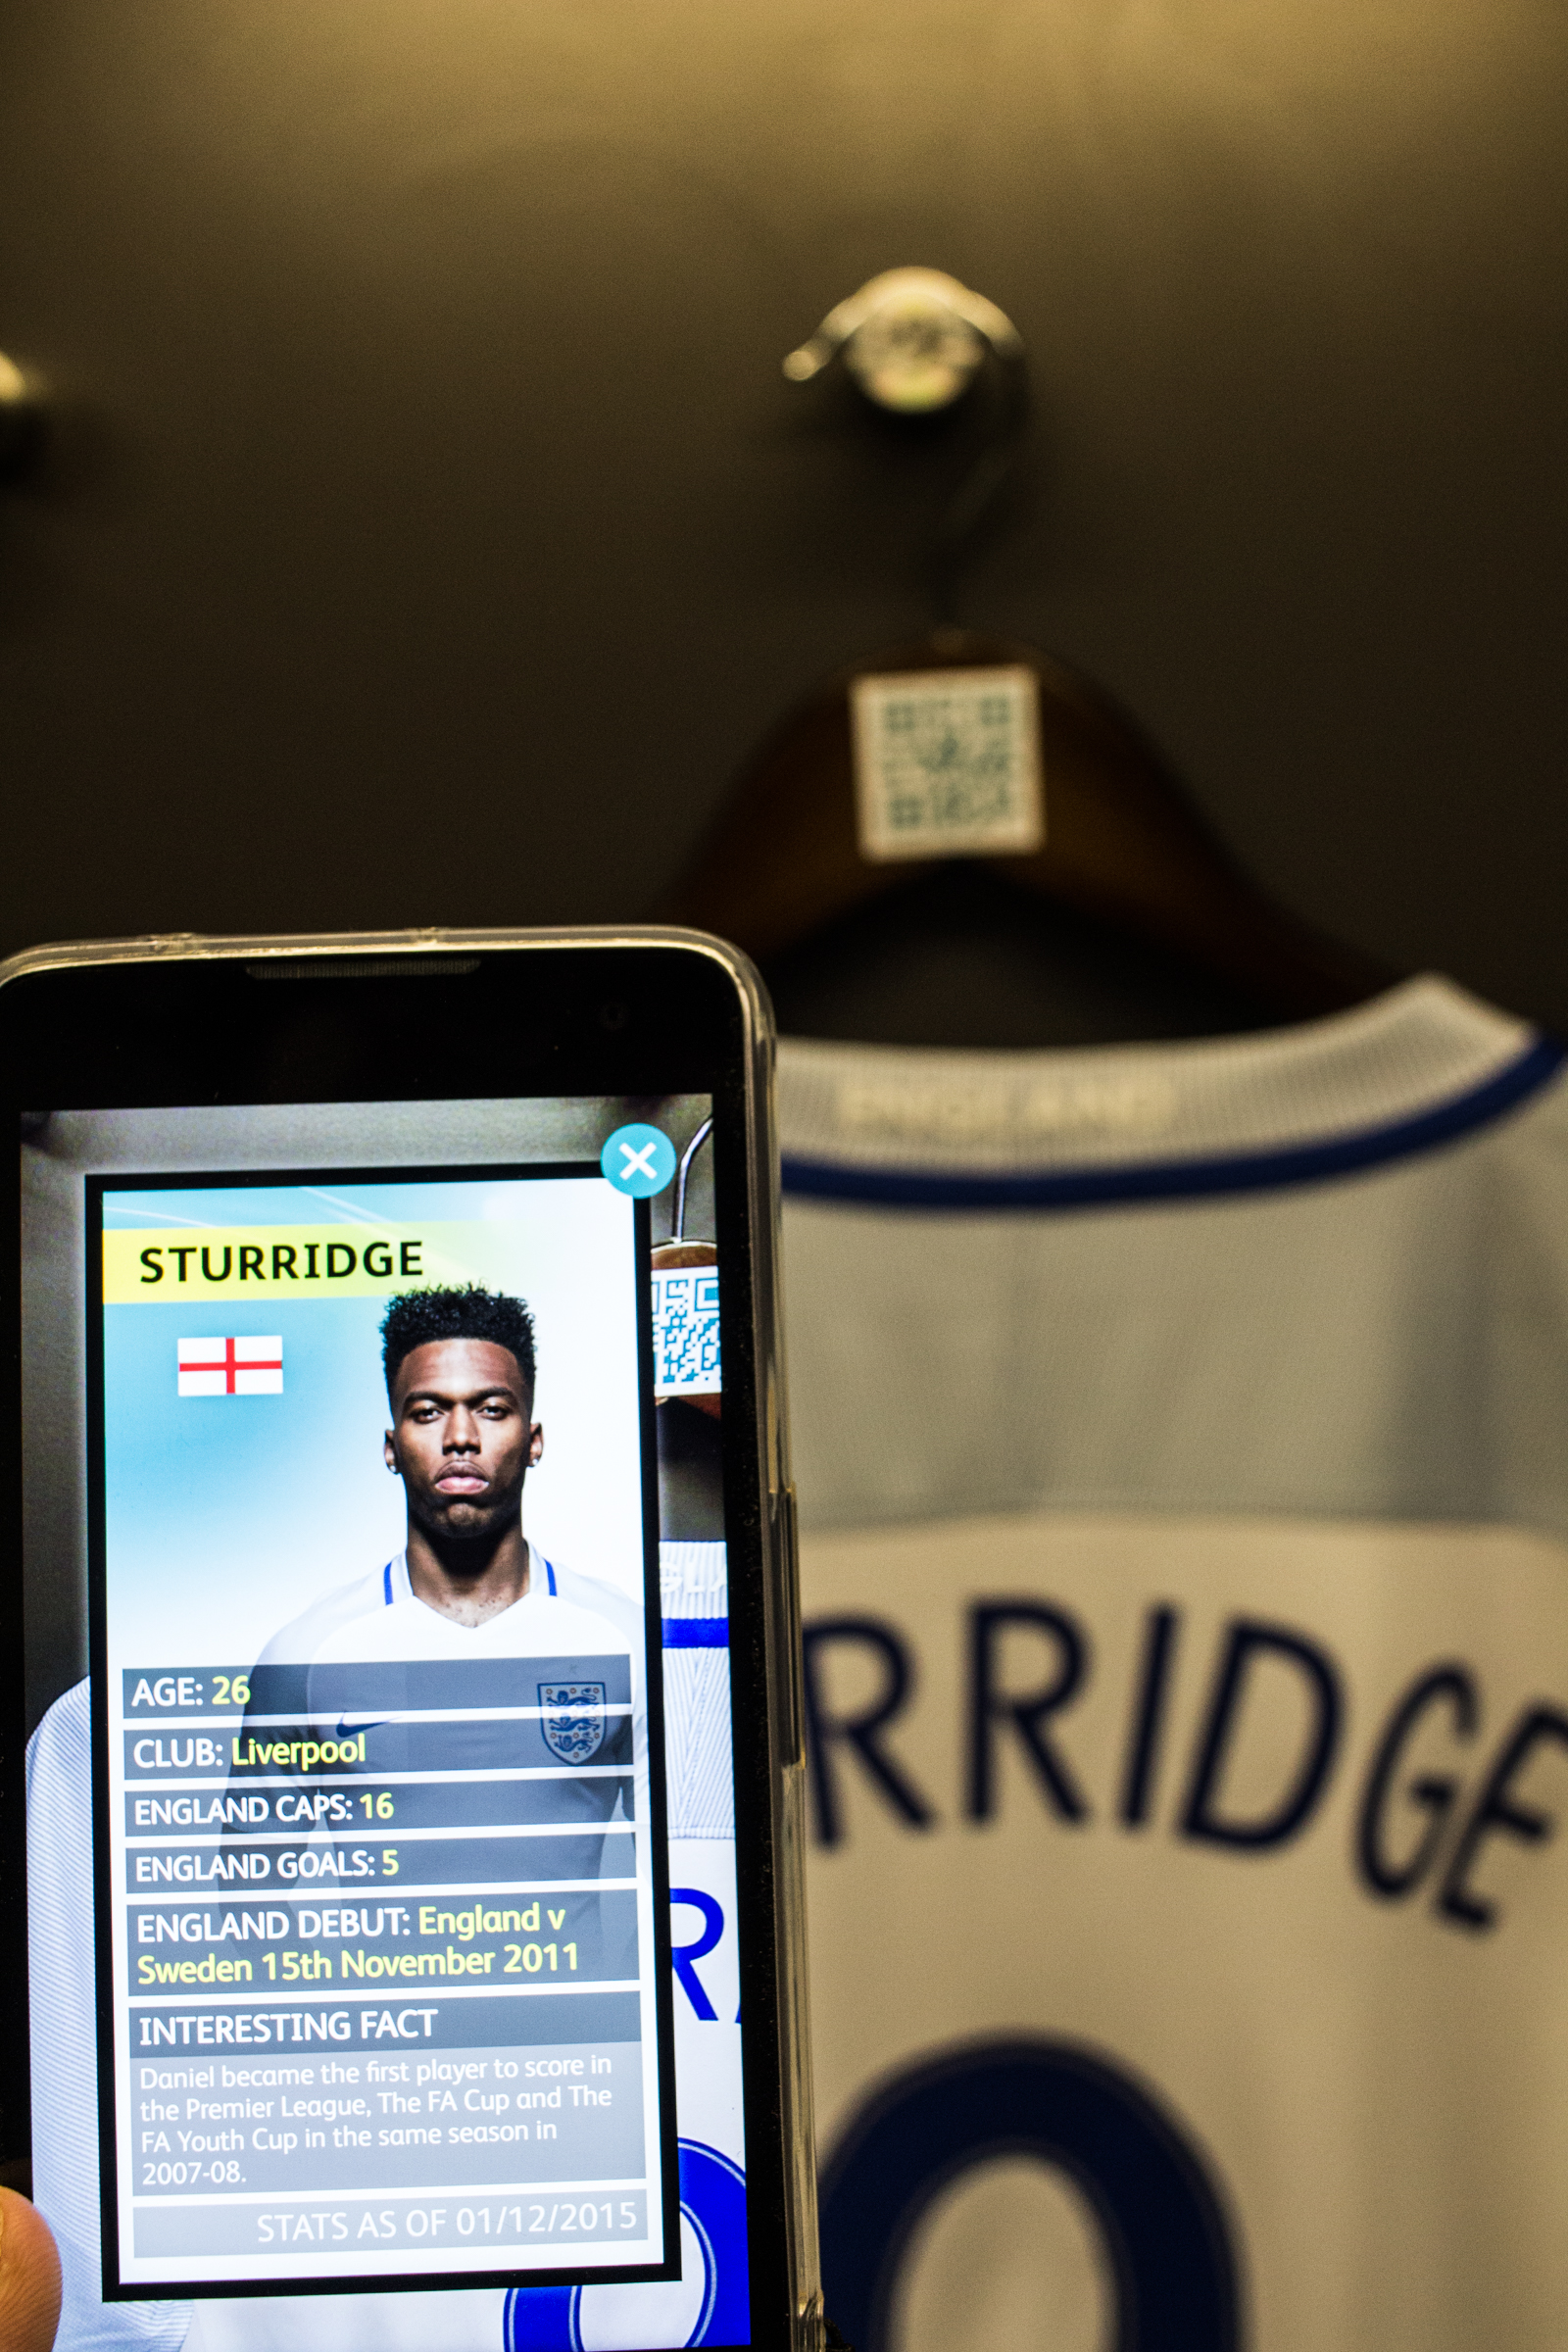 QR codes have been assigned to player shirts in the locker room, letting you view stats on their sporting achievements.